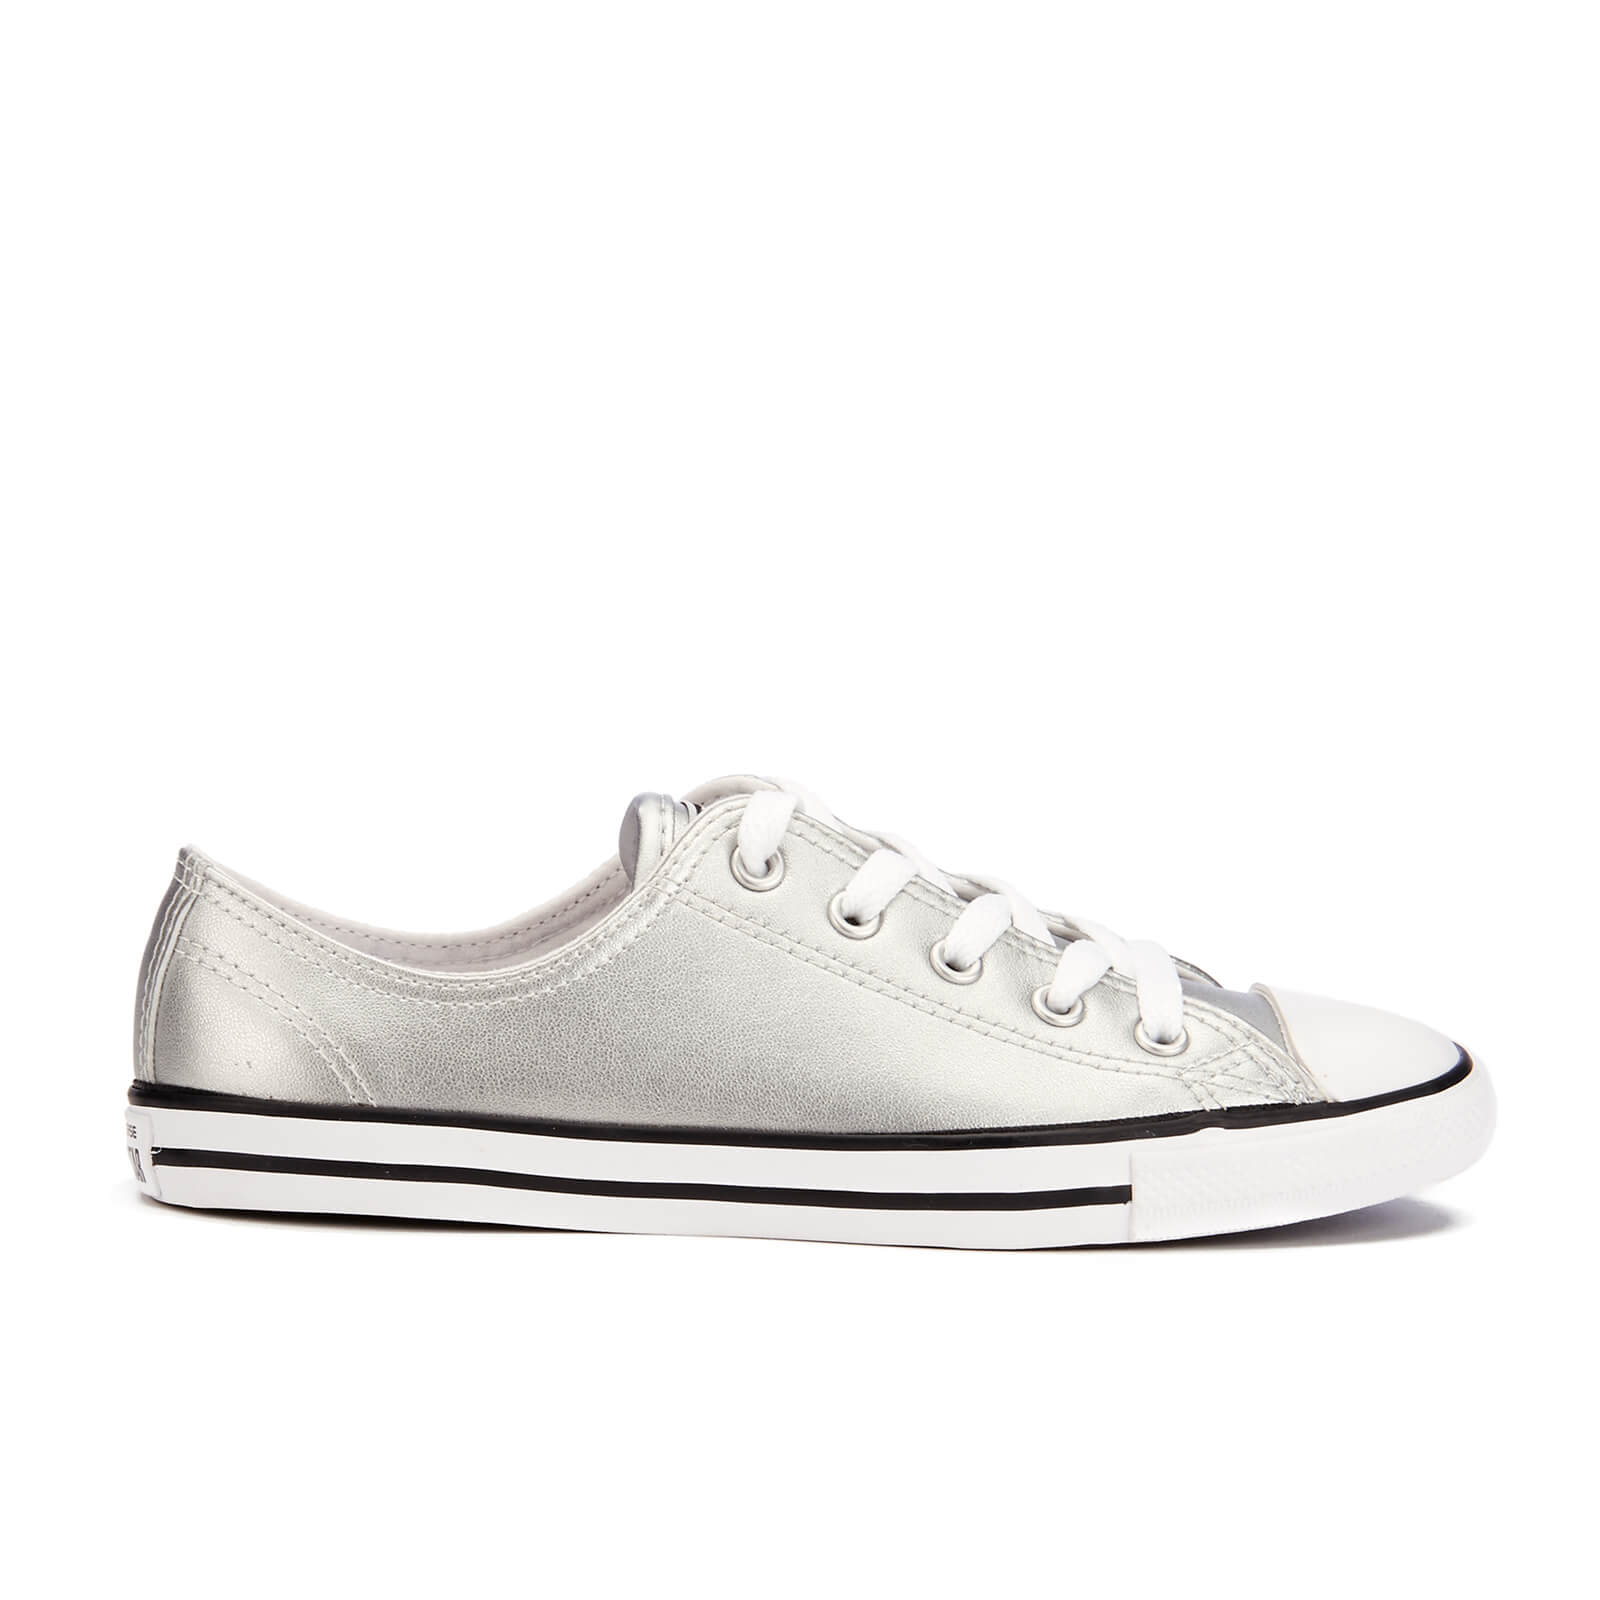 0a8cc547ddb3 Converse Women s Chuck Taylor All Star Dainty Ox Trainers - Silver ...